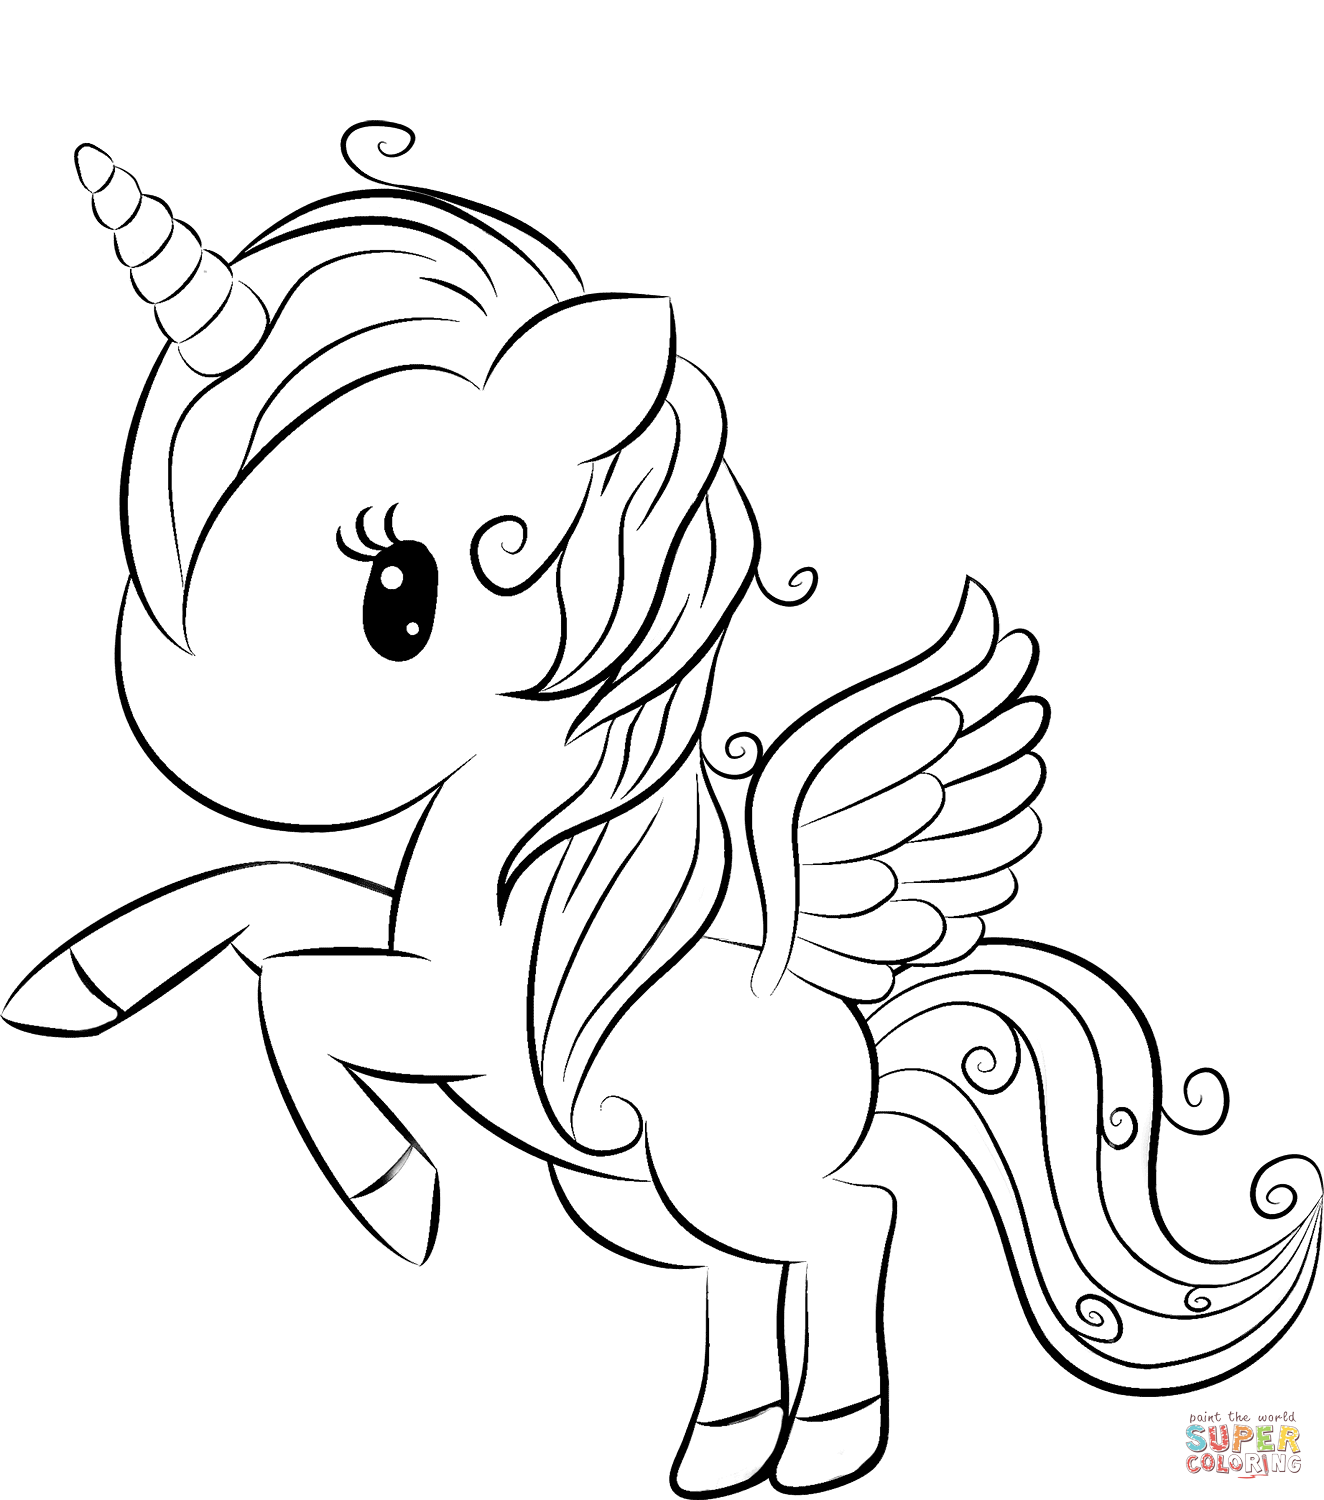 coloring pictures of unicorn unicorn coloring pages to download and print for free unicorn of coloring pictures